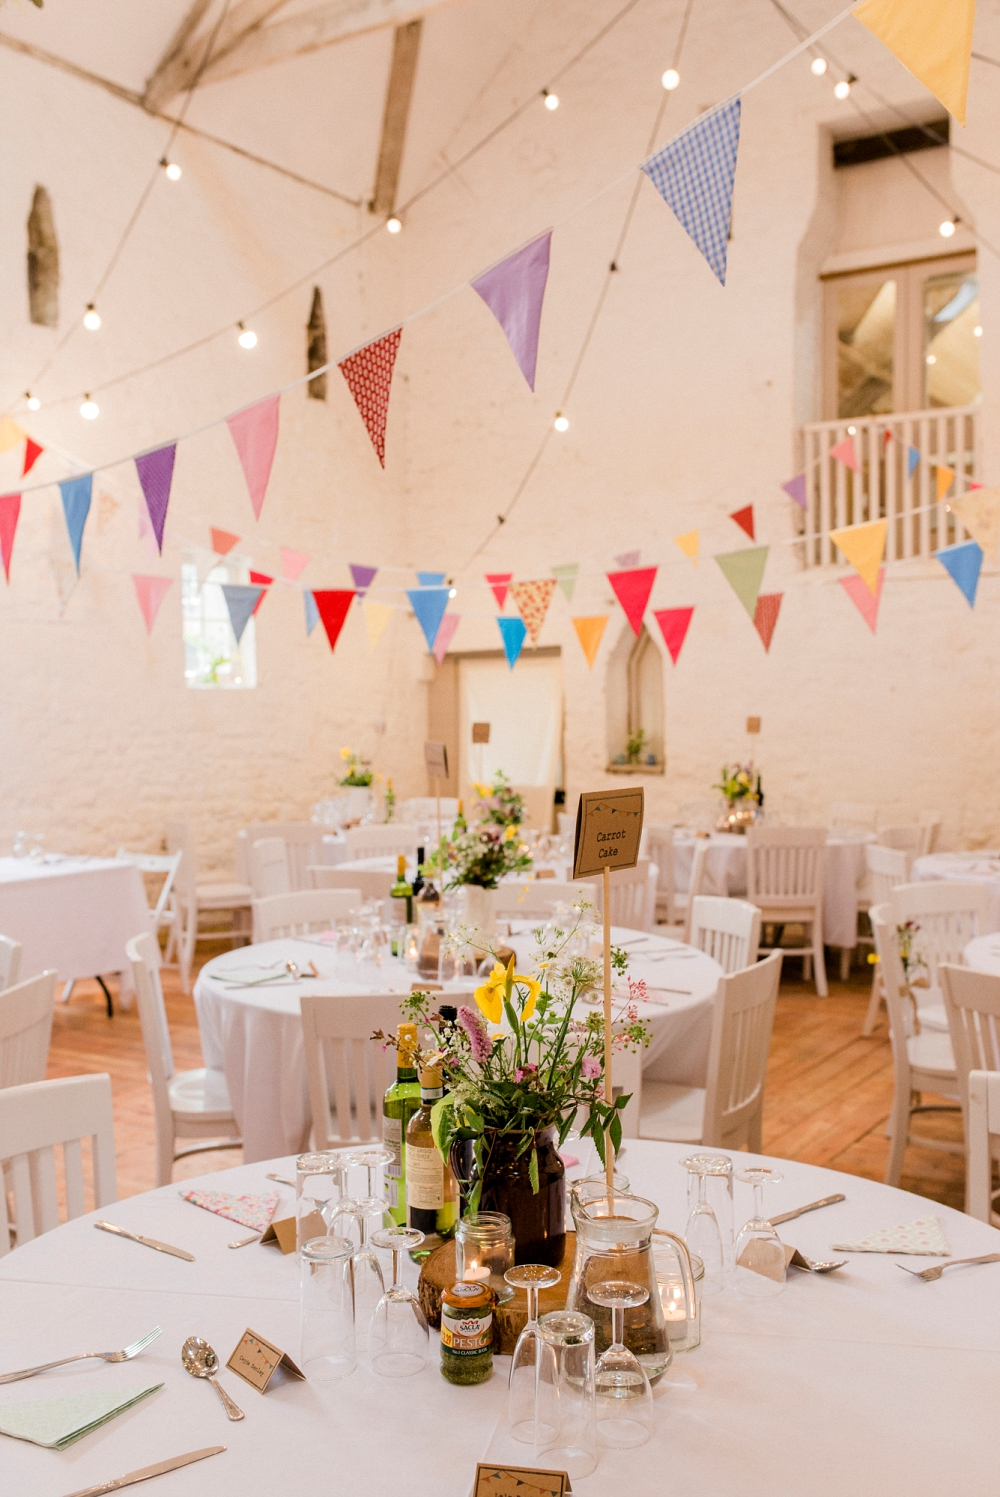 Barn Wedding Venues in the North West